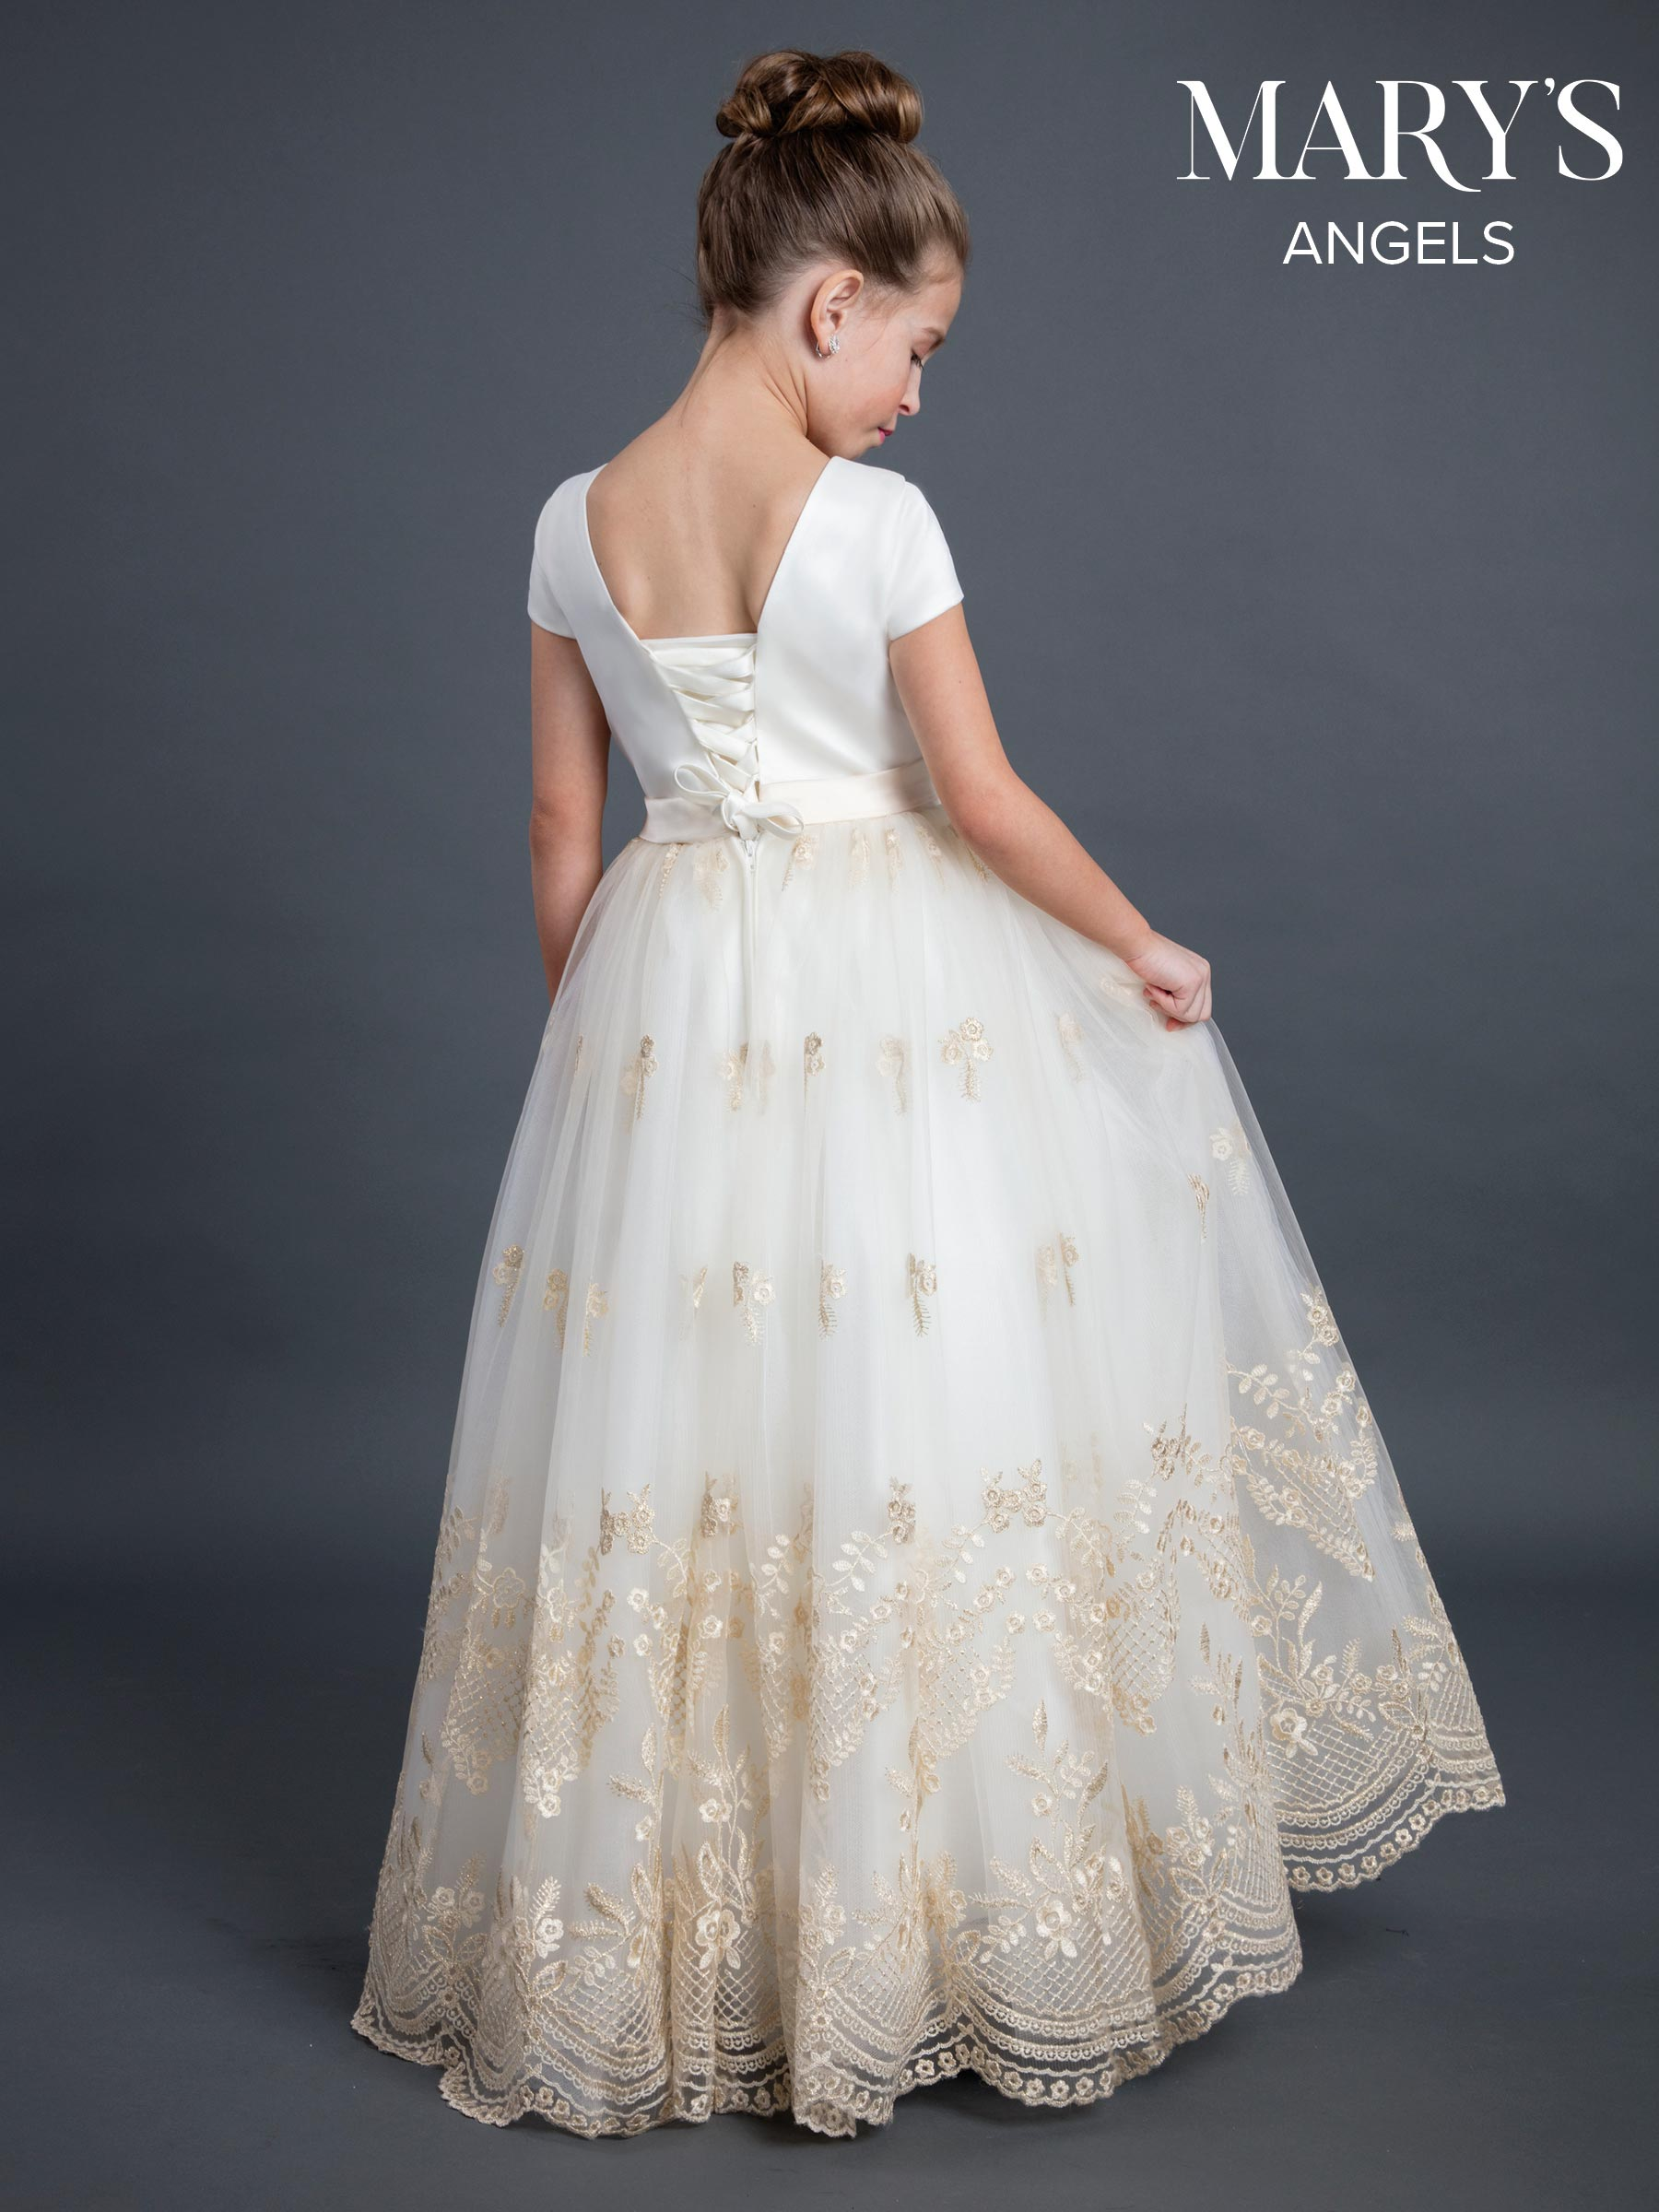 Angel Flower Girl Dresses | Mary's Angels | Style - MB9026